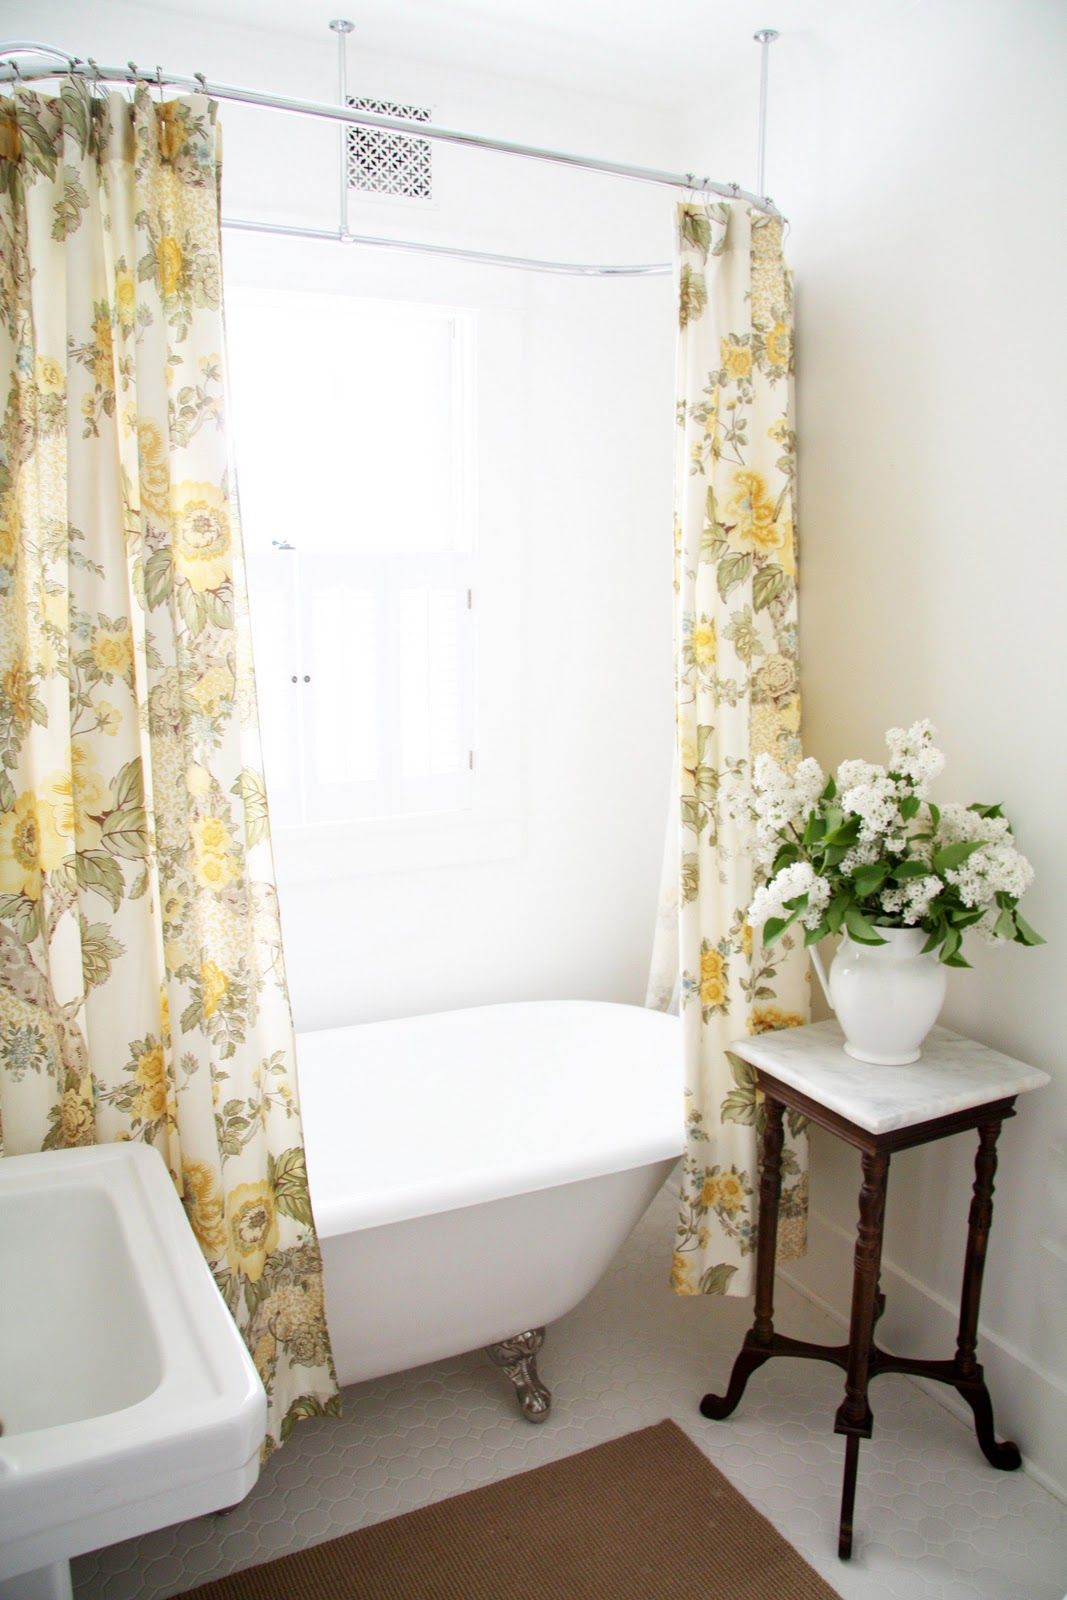 Future Clawfoot Tub Shower A Country Farmhouse The Bathroom